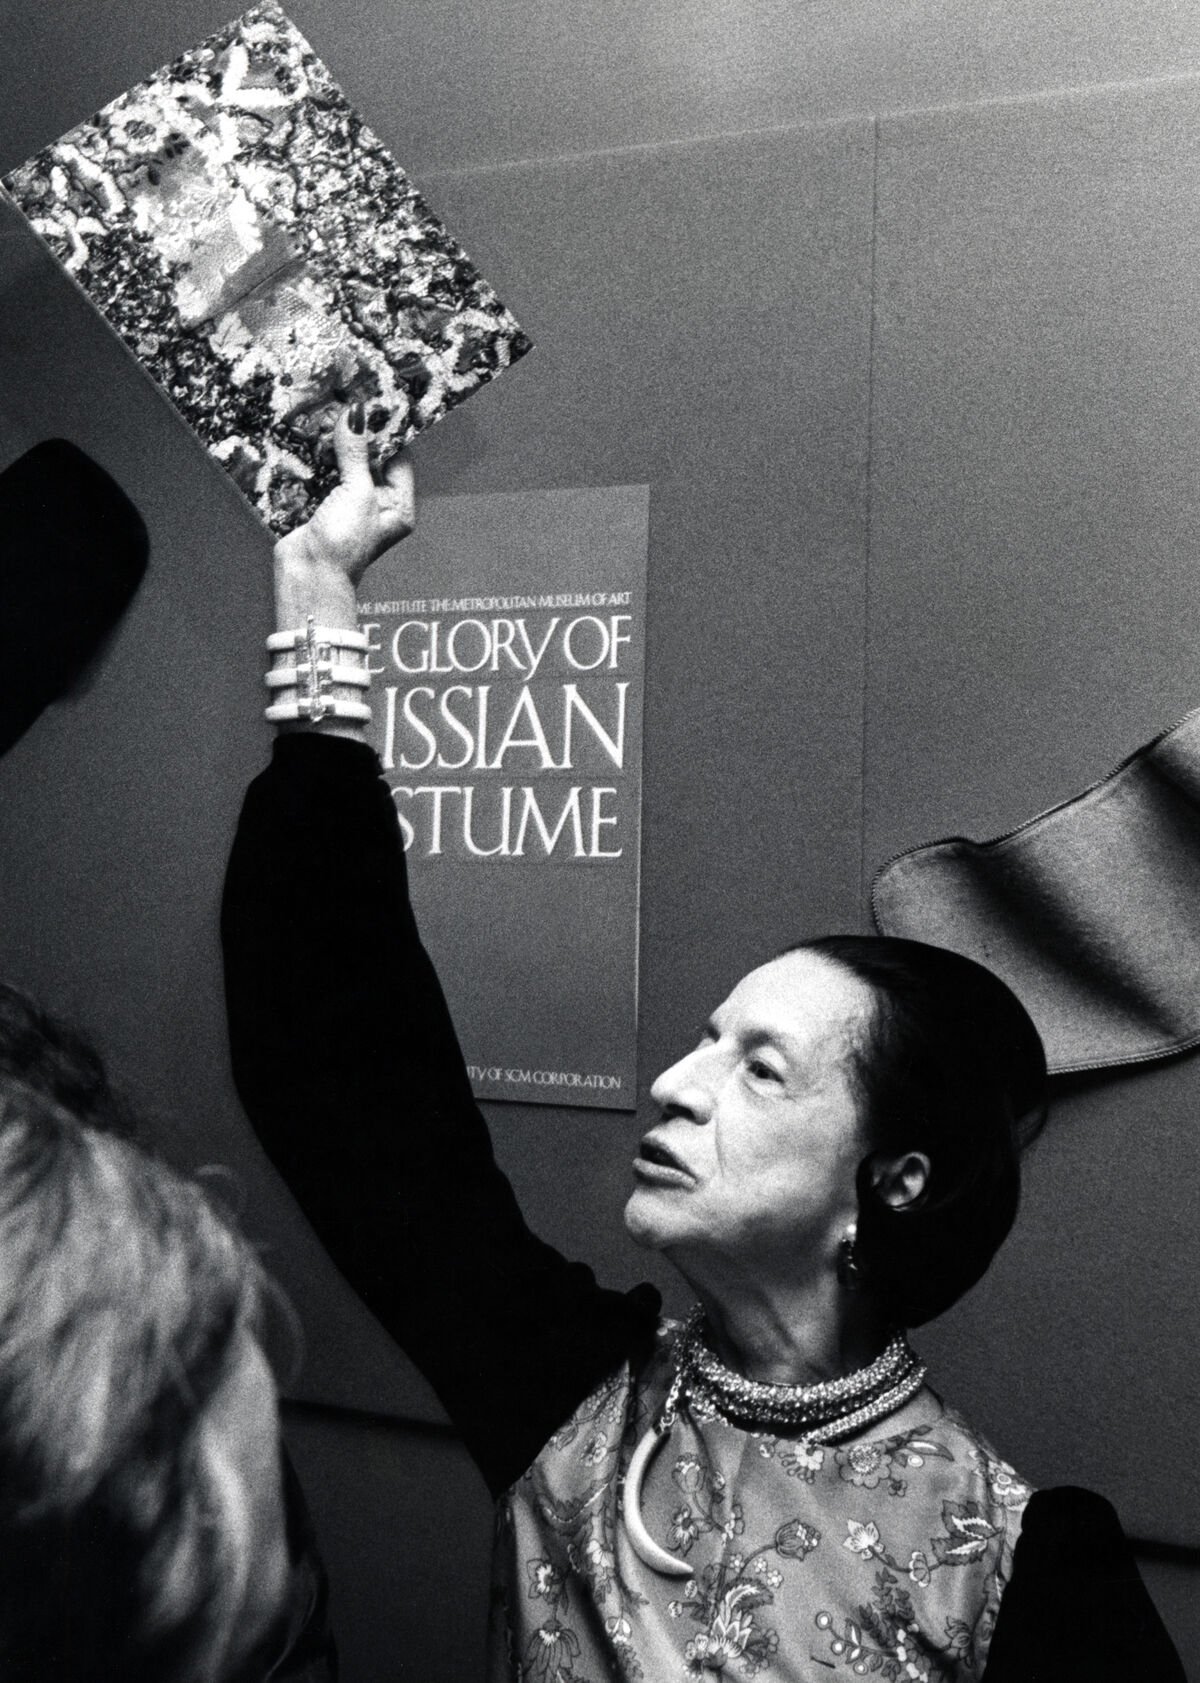 """Diana Vreeland at """"The Glory of Russian Costume"""" Costume Institute Benefit Gala at the Metropolitan Museum of Art, New York, 1976. Photo by Ron Galella/WireImage."""